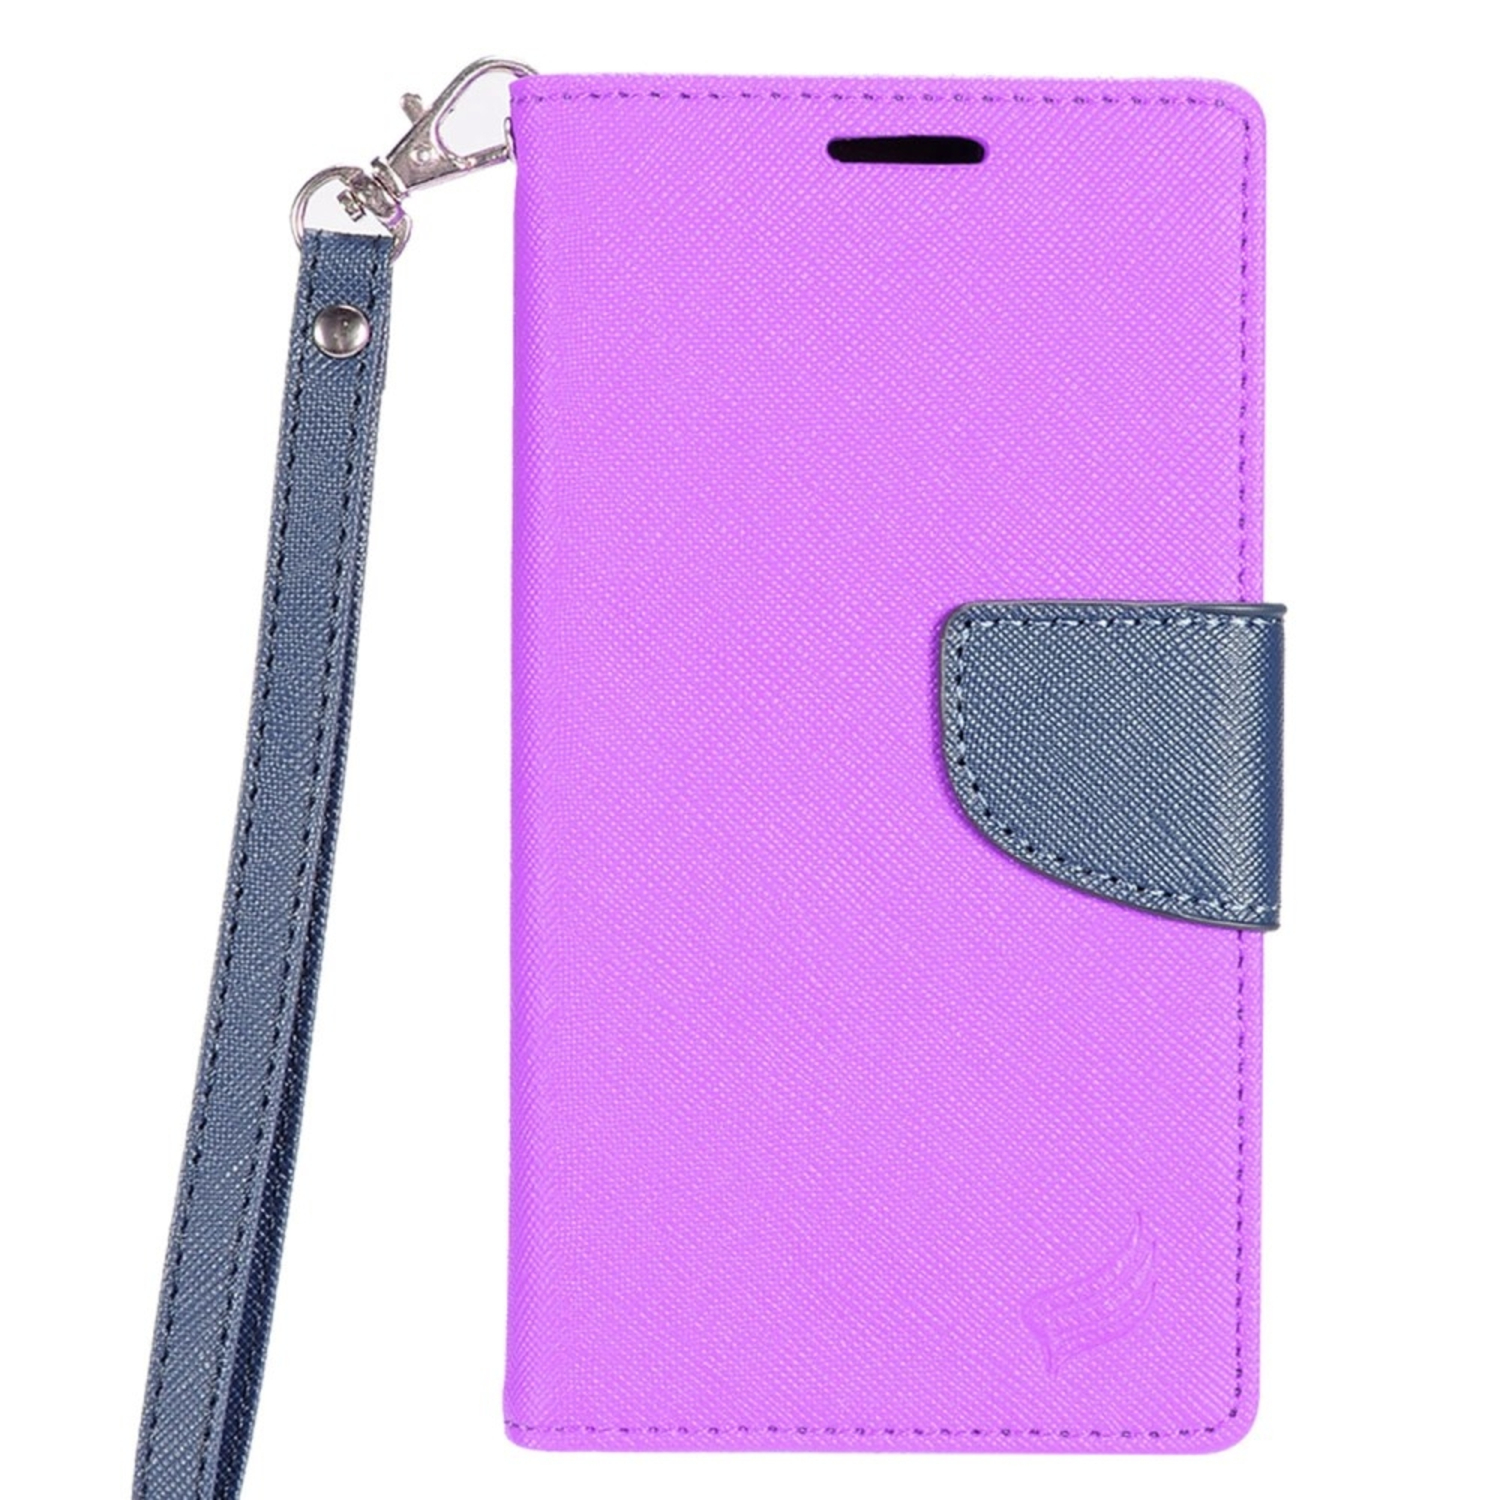 LG G6 case, by Insten Stand Folio Flip Leather [Card Holder Slot] Wallet Pouch Case Cover For LG G6